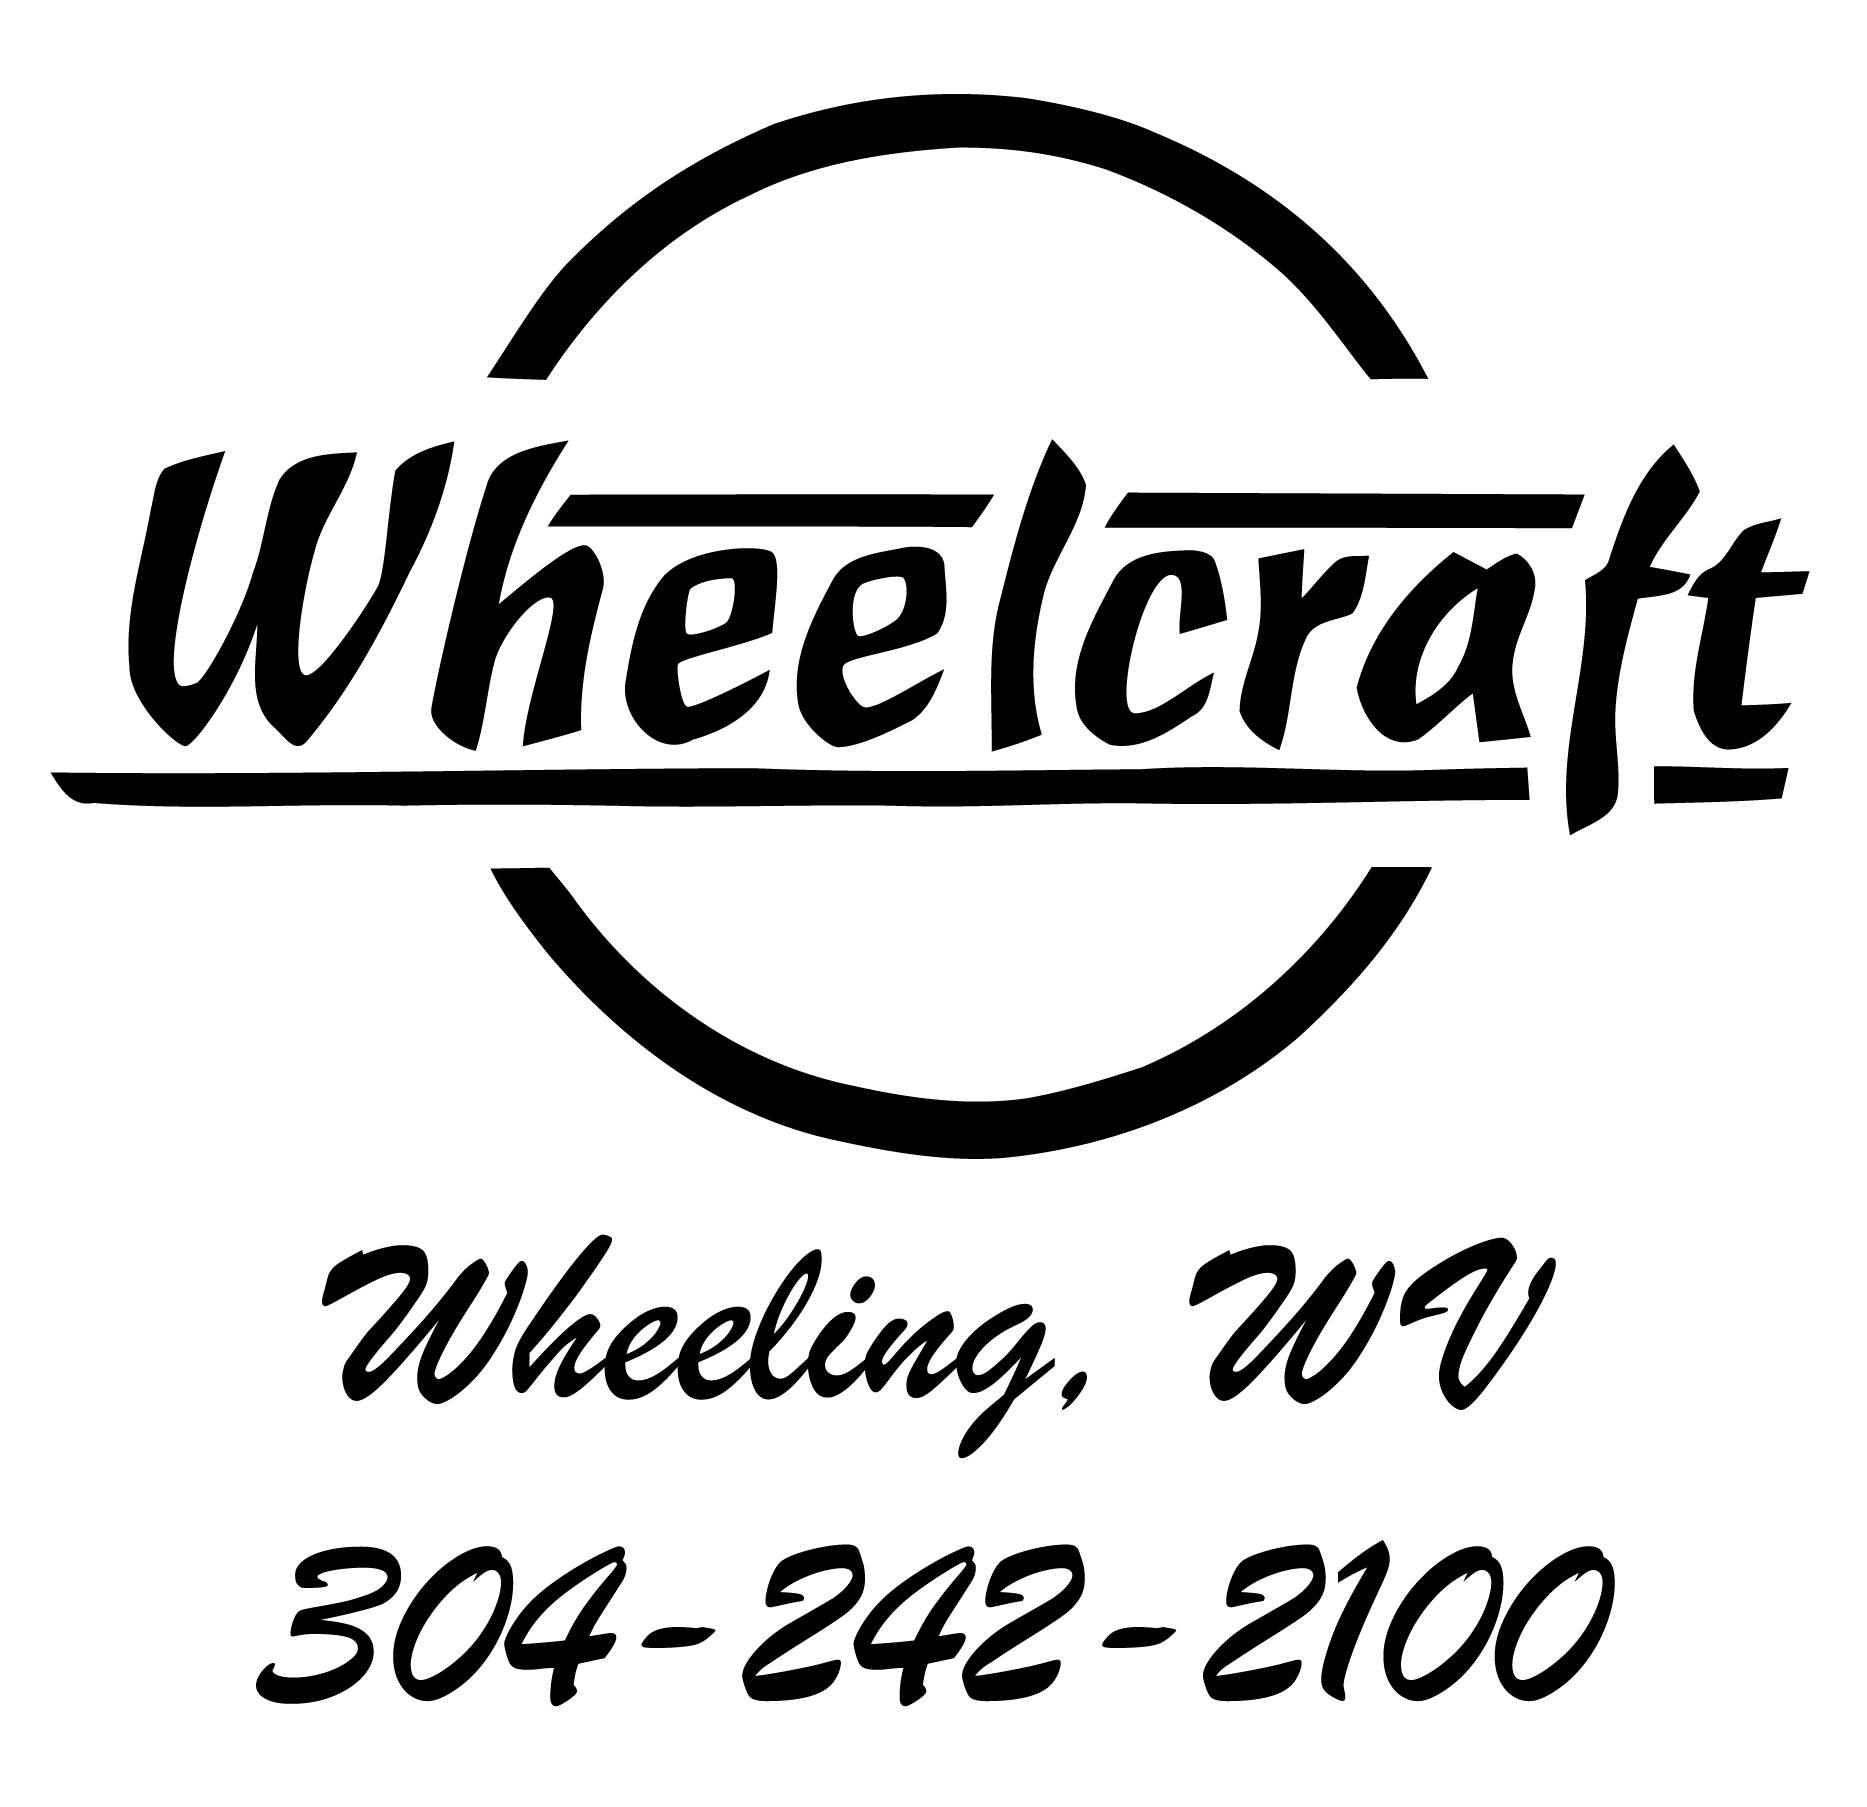 Wheelcraft Bicycles